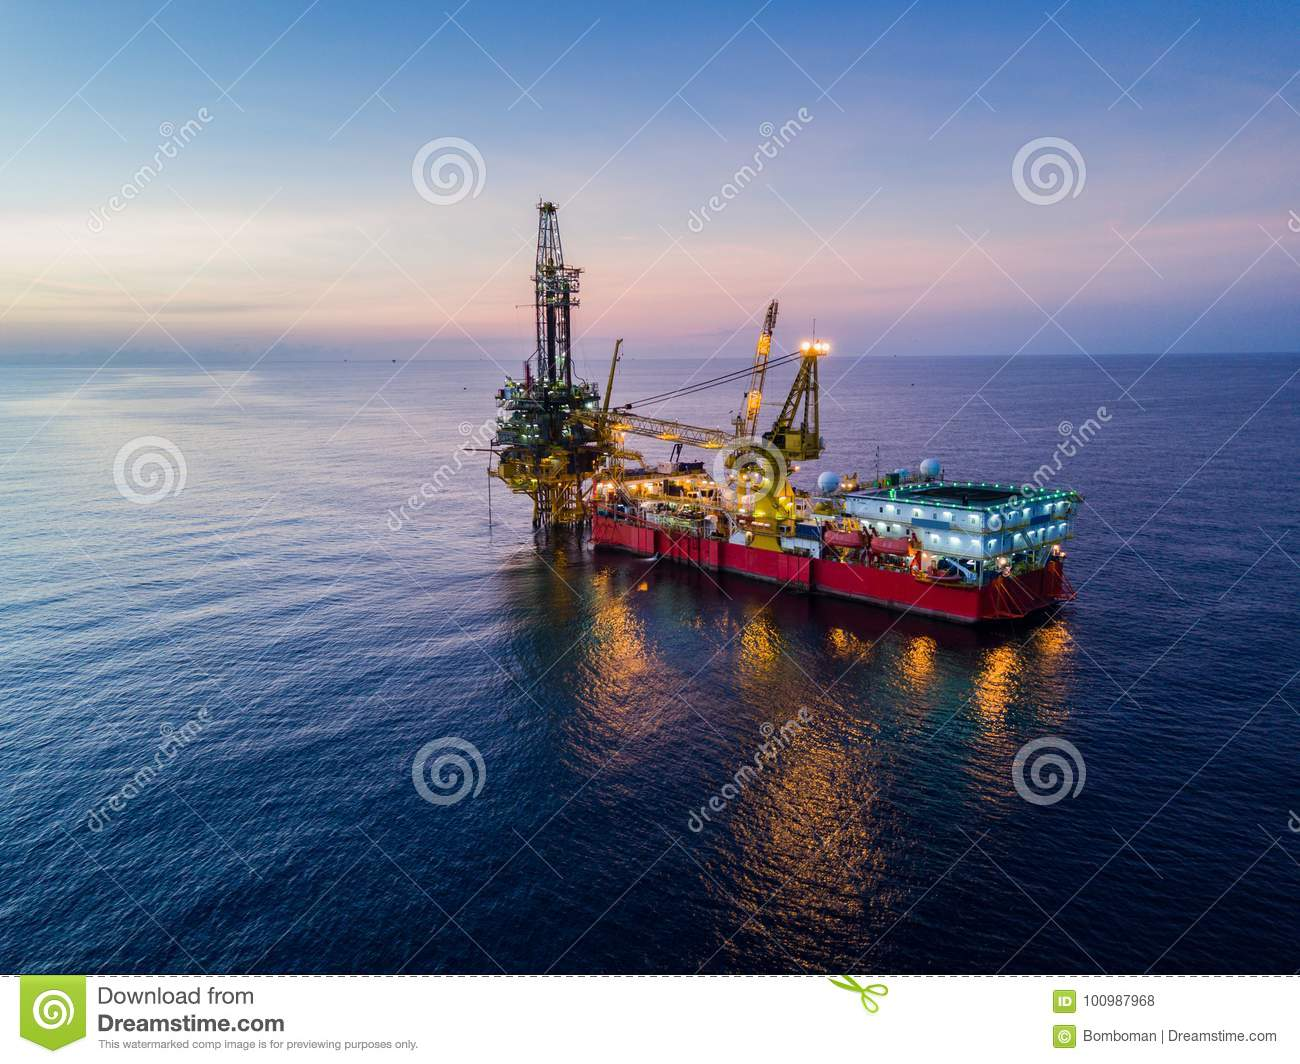 Aerial View Of Tender Drilling Oil Rig Barge Oil Rig Stock Photo